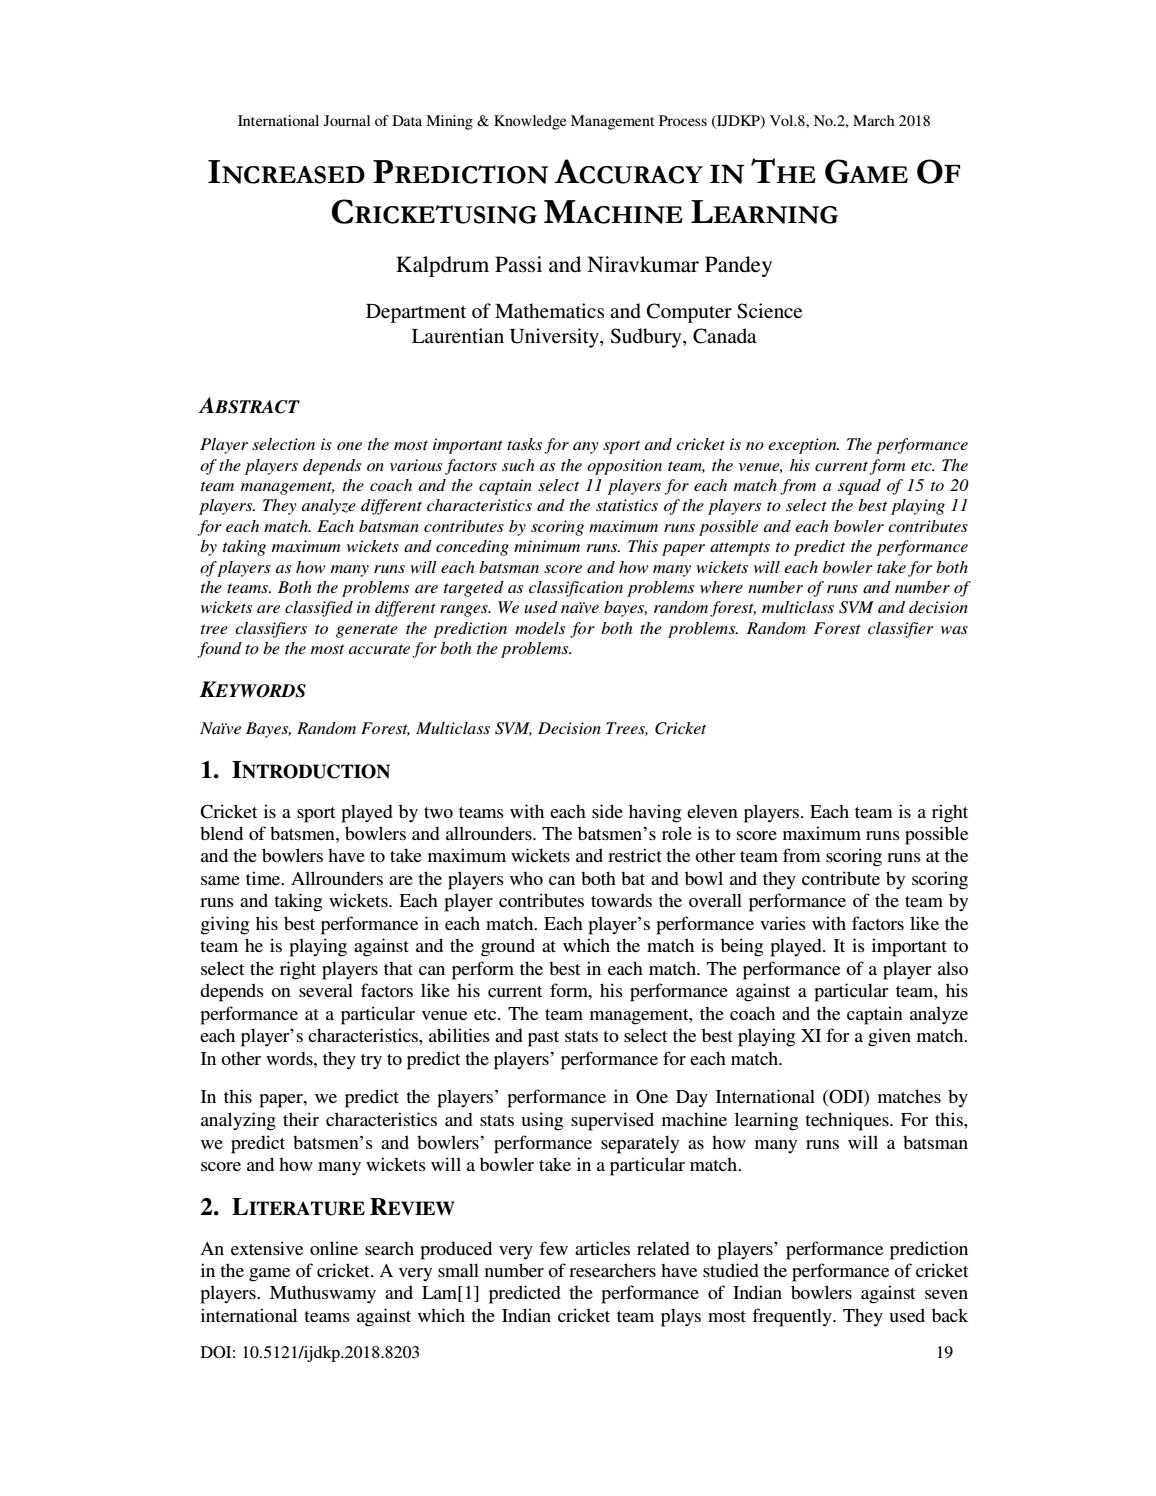 Increased Prediction Accuracy in the Game of Cricket Using Machine Learning